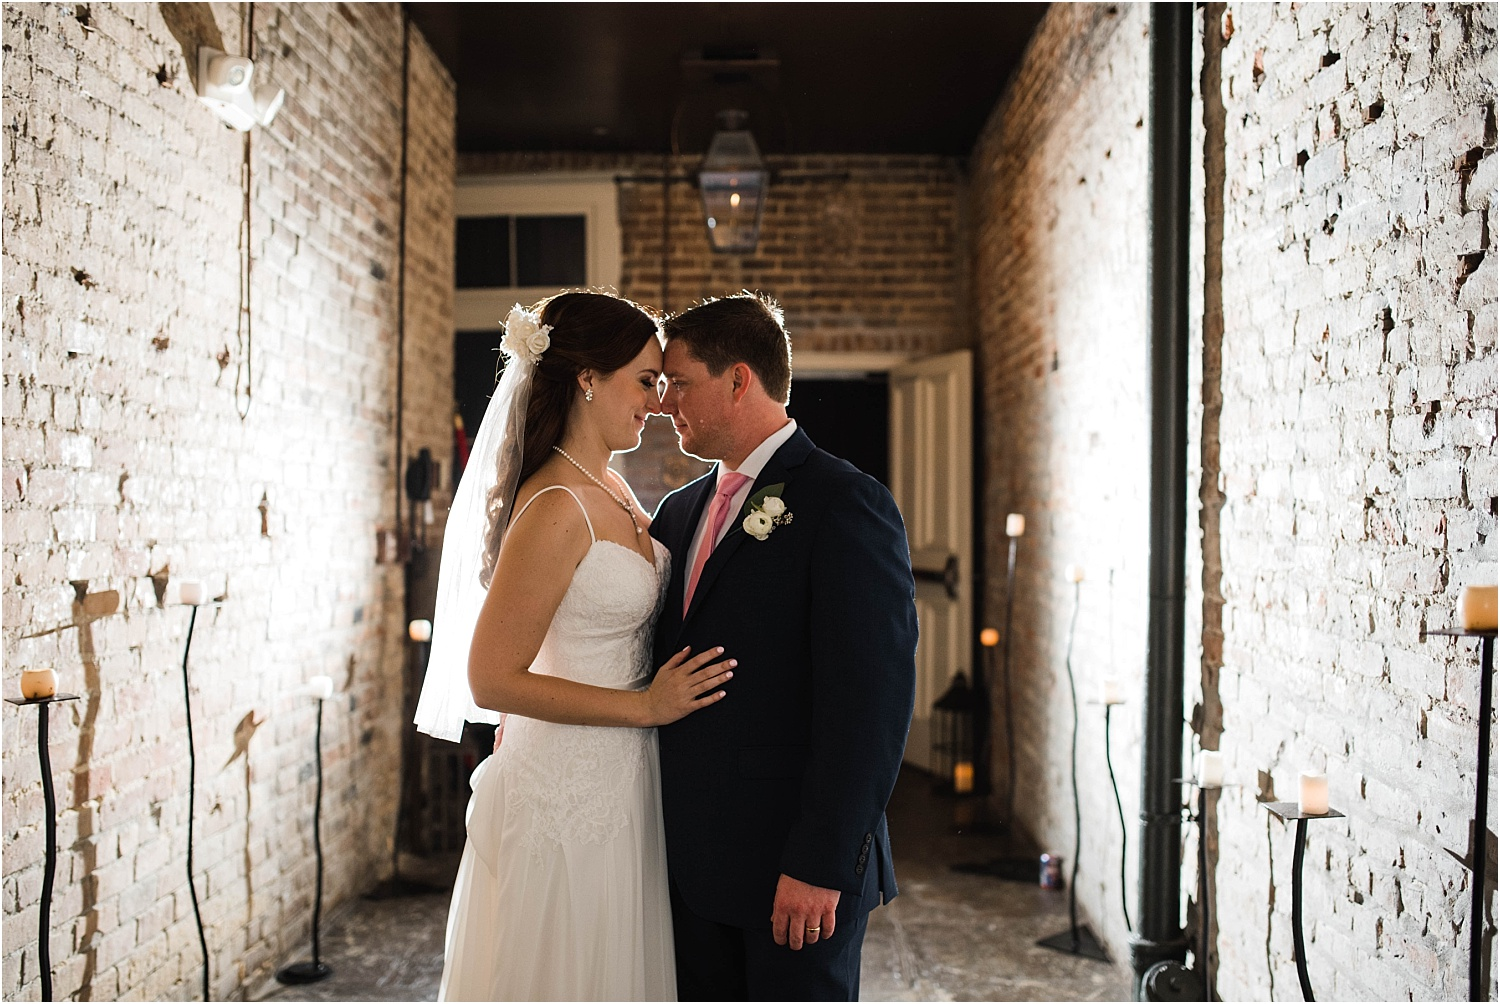 Amy + Chris-Pharmacy-Museum-Muriel's-New-Orleans-Wedding-Photos_Gabby Chapin_Prints_00455_BLOG.jpg